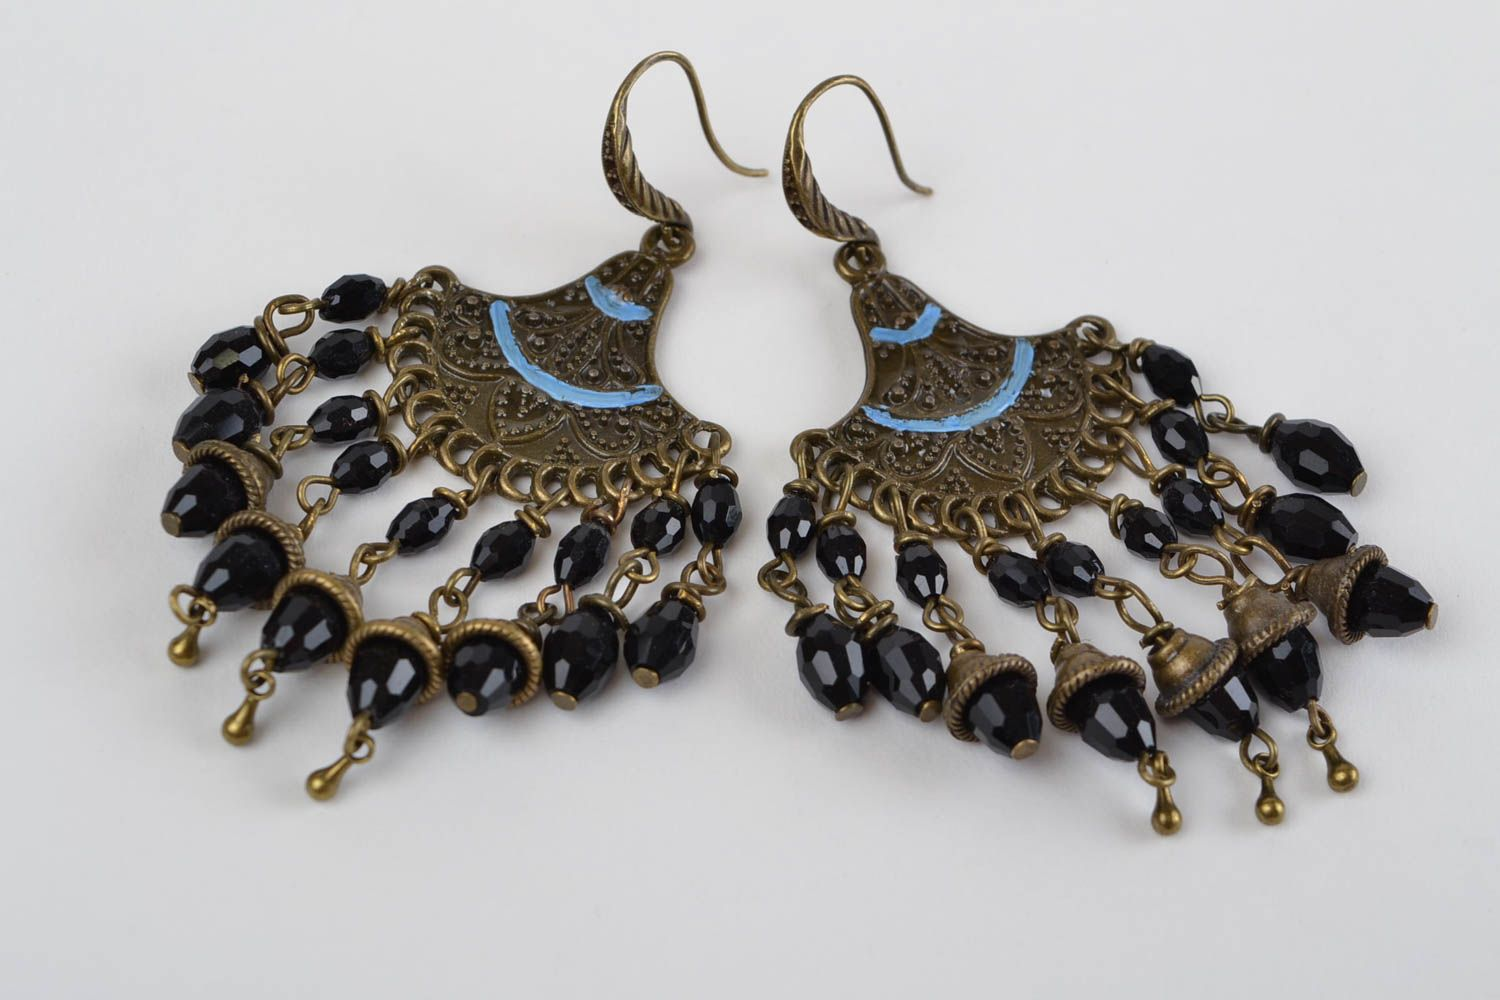 Handmade massive earrings accessory in Eastern style beautiful earrings photo 7